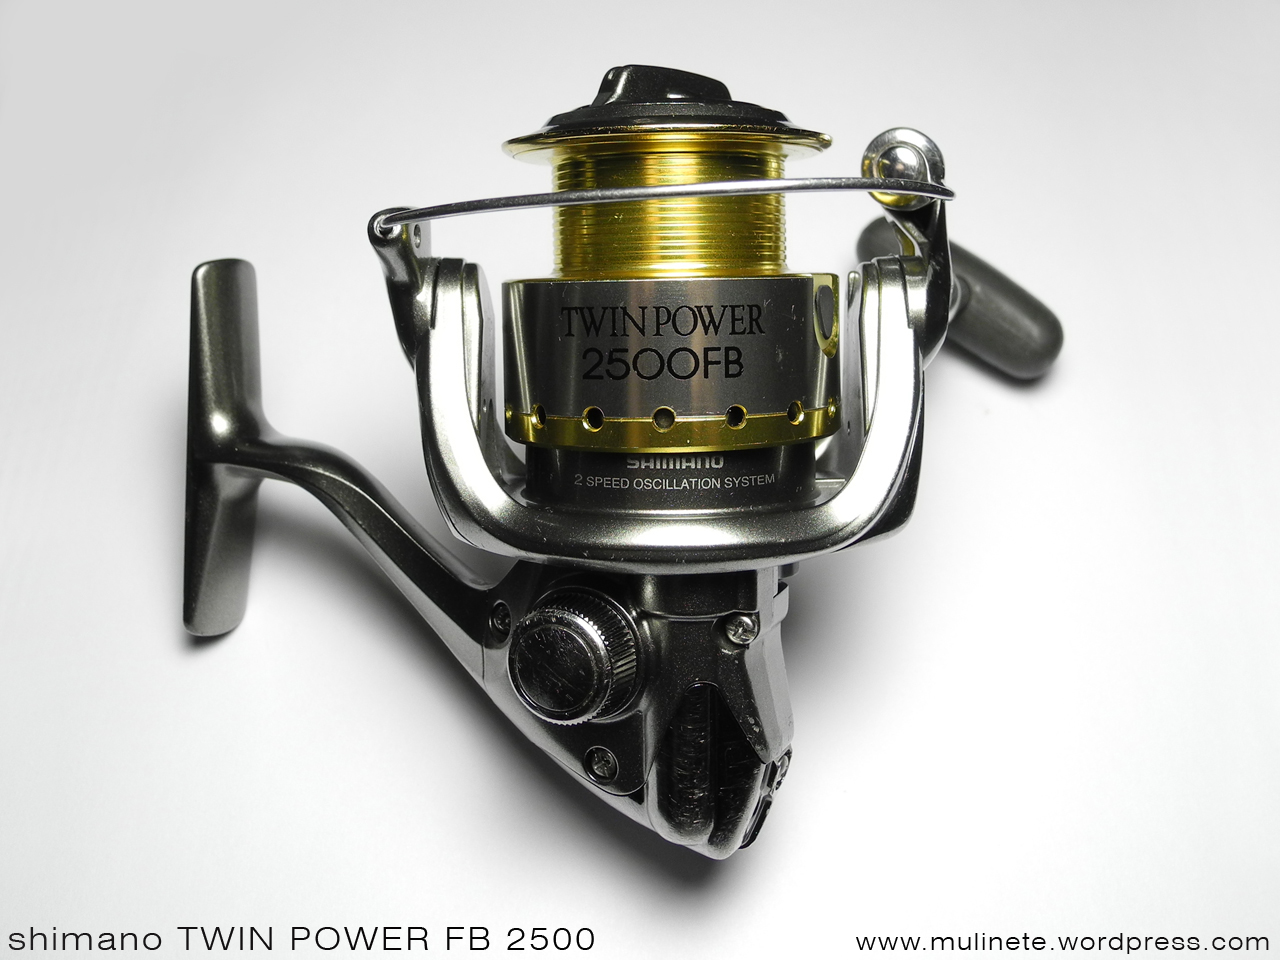 https://mulinete.files.wordpress.com/2013/08/shimano_twin_power_fb_2500_01.jpg